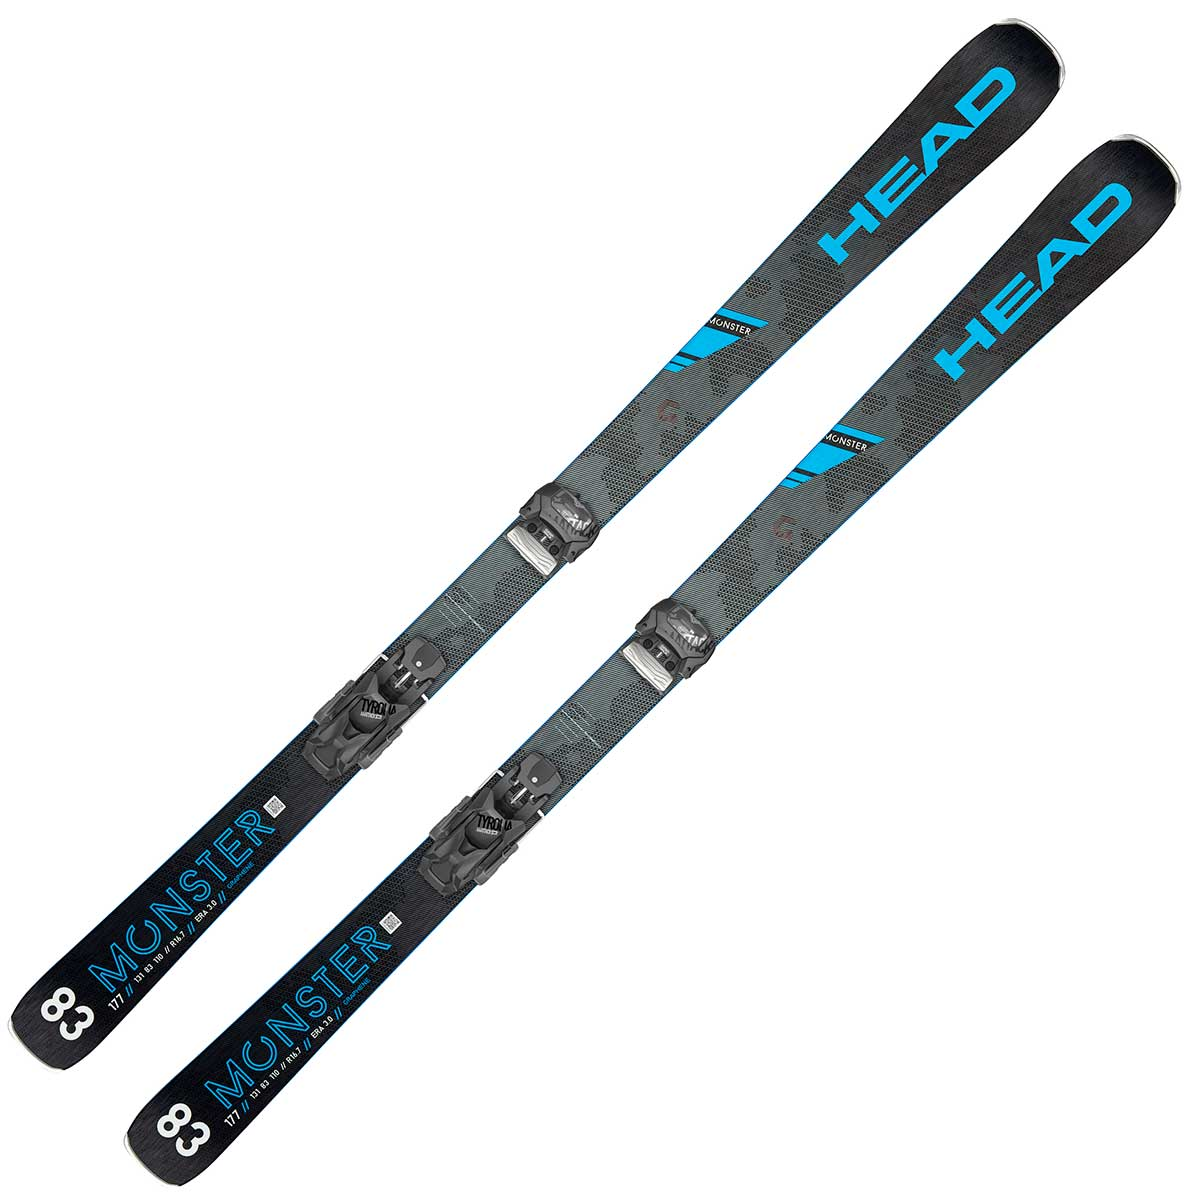 Head Monster 83 Ti ski in black and blue